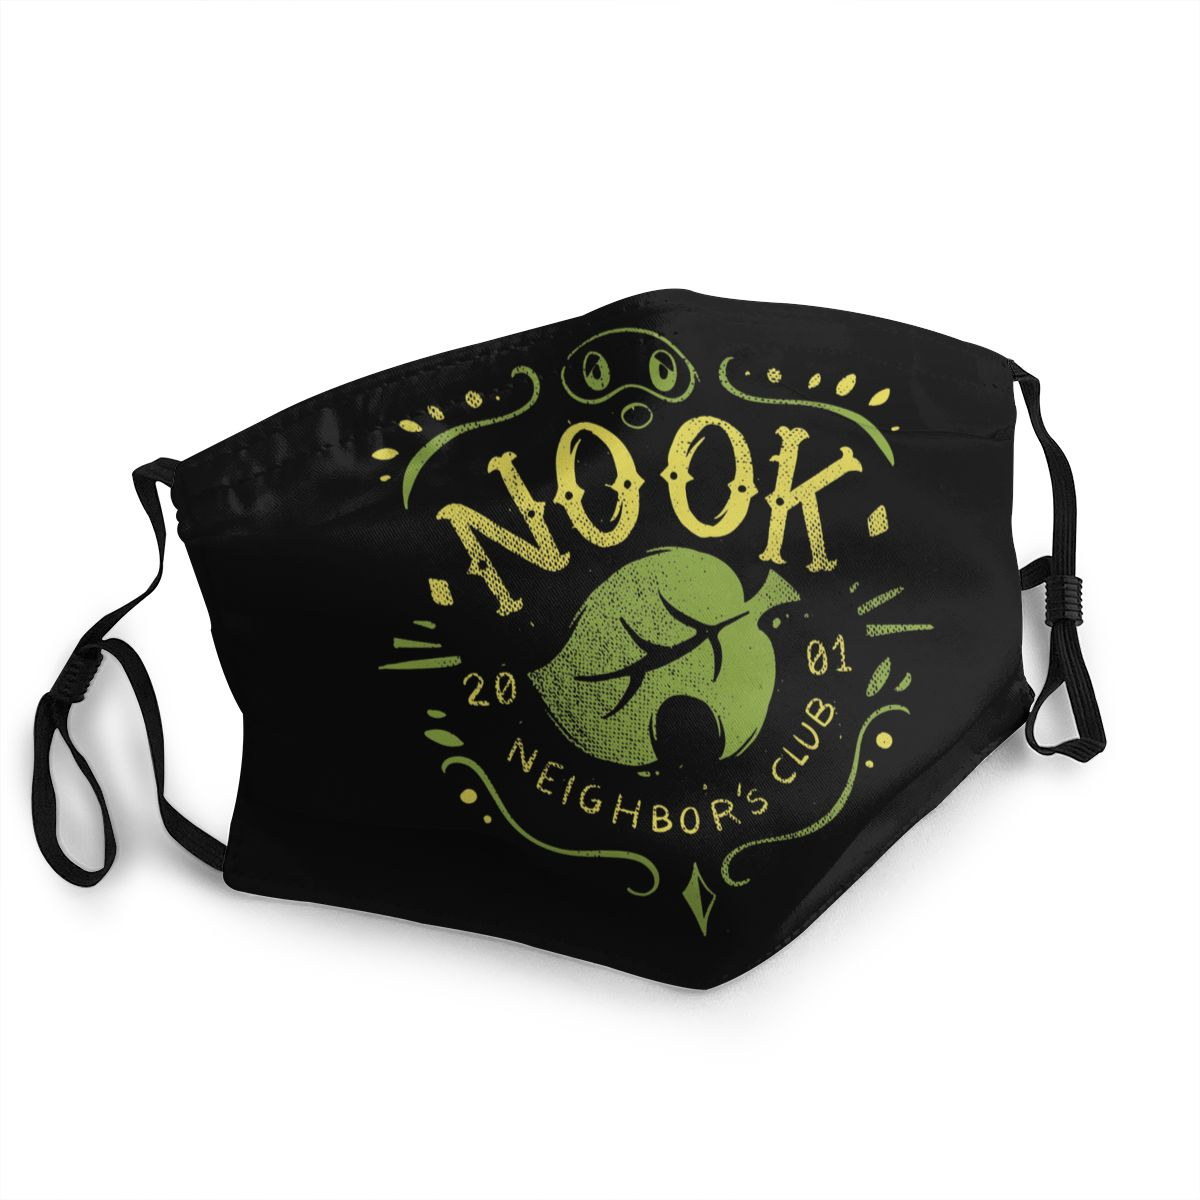 Nook Neighbor's Club Non-Disposable Mouth Face Mask Animal Crossing Anti Bacterial Dustproof Mask Protection Cover Respirator